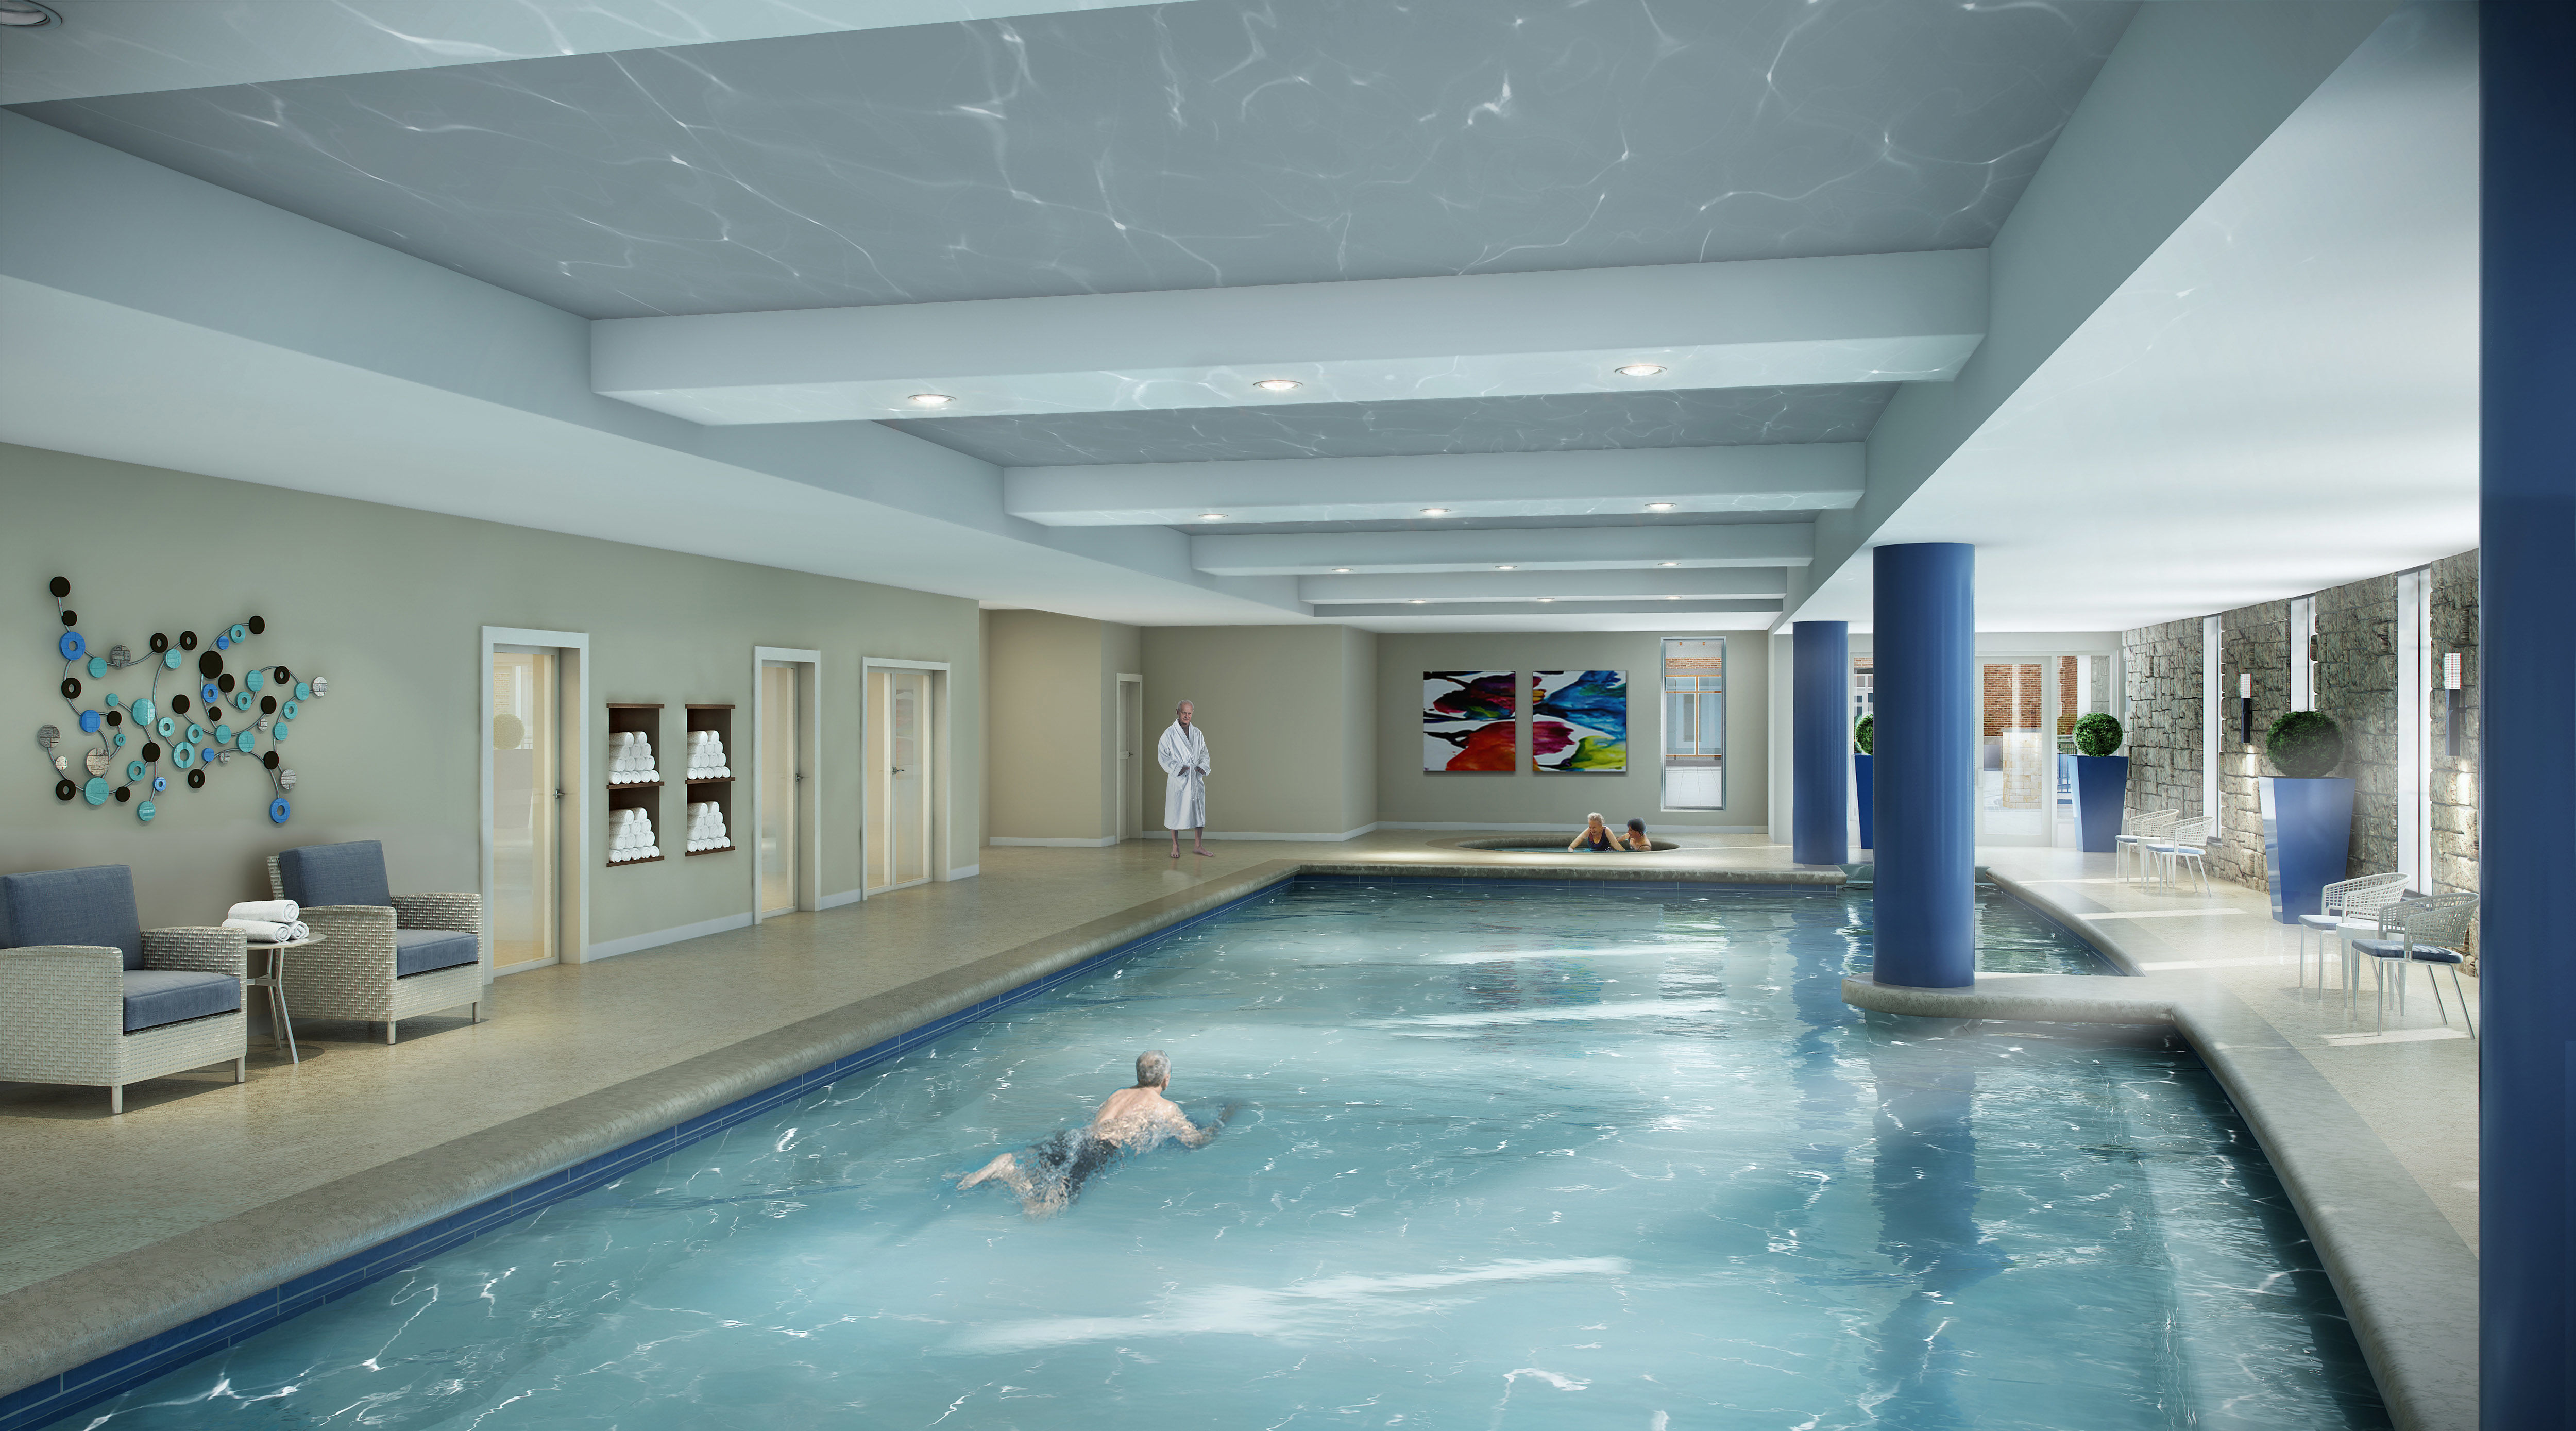 Pool Natatorium Renovation New Repositioning THW Design Senior Living